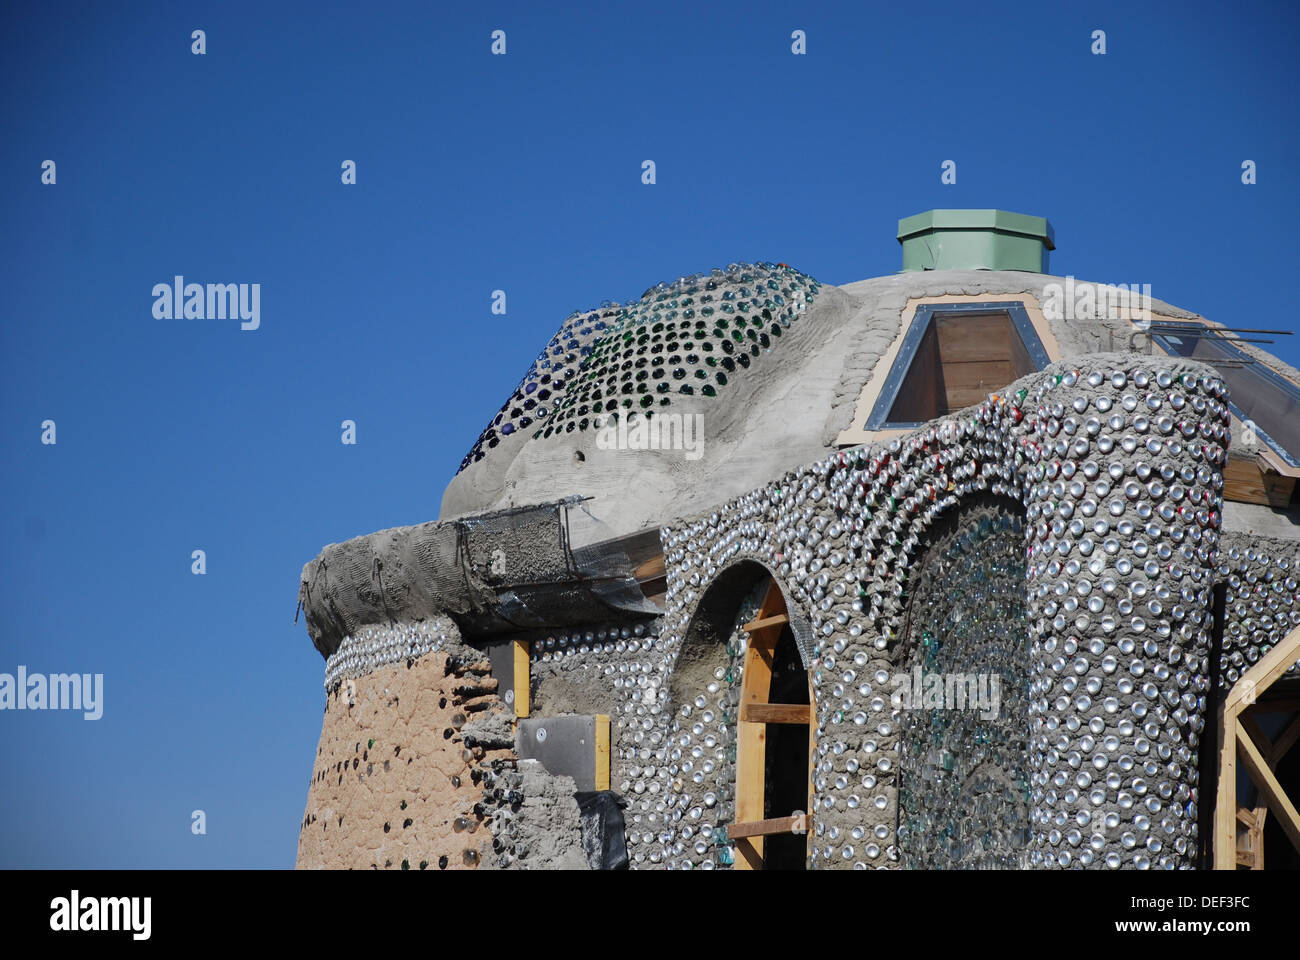 Earthship Green Home Using Recycled Rubber Tires And Glass Bottles